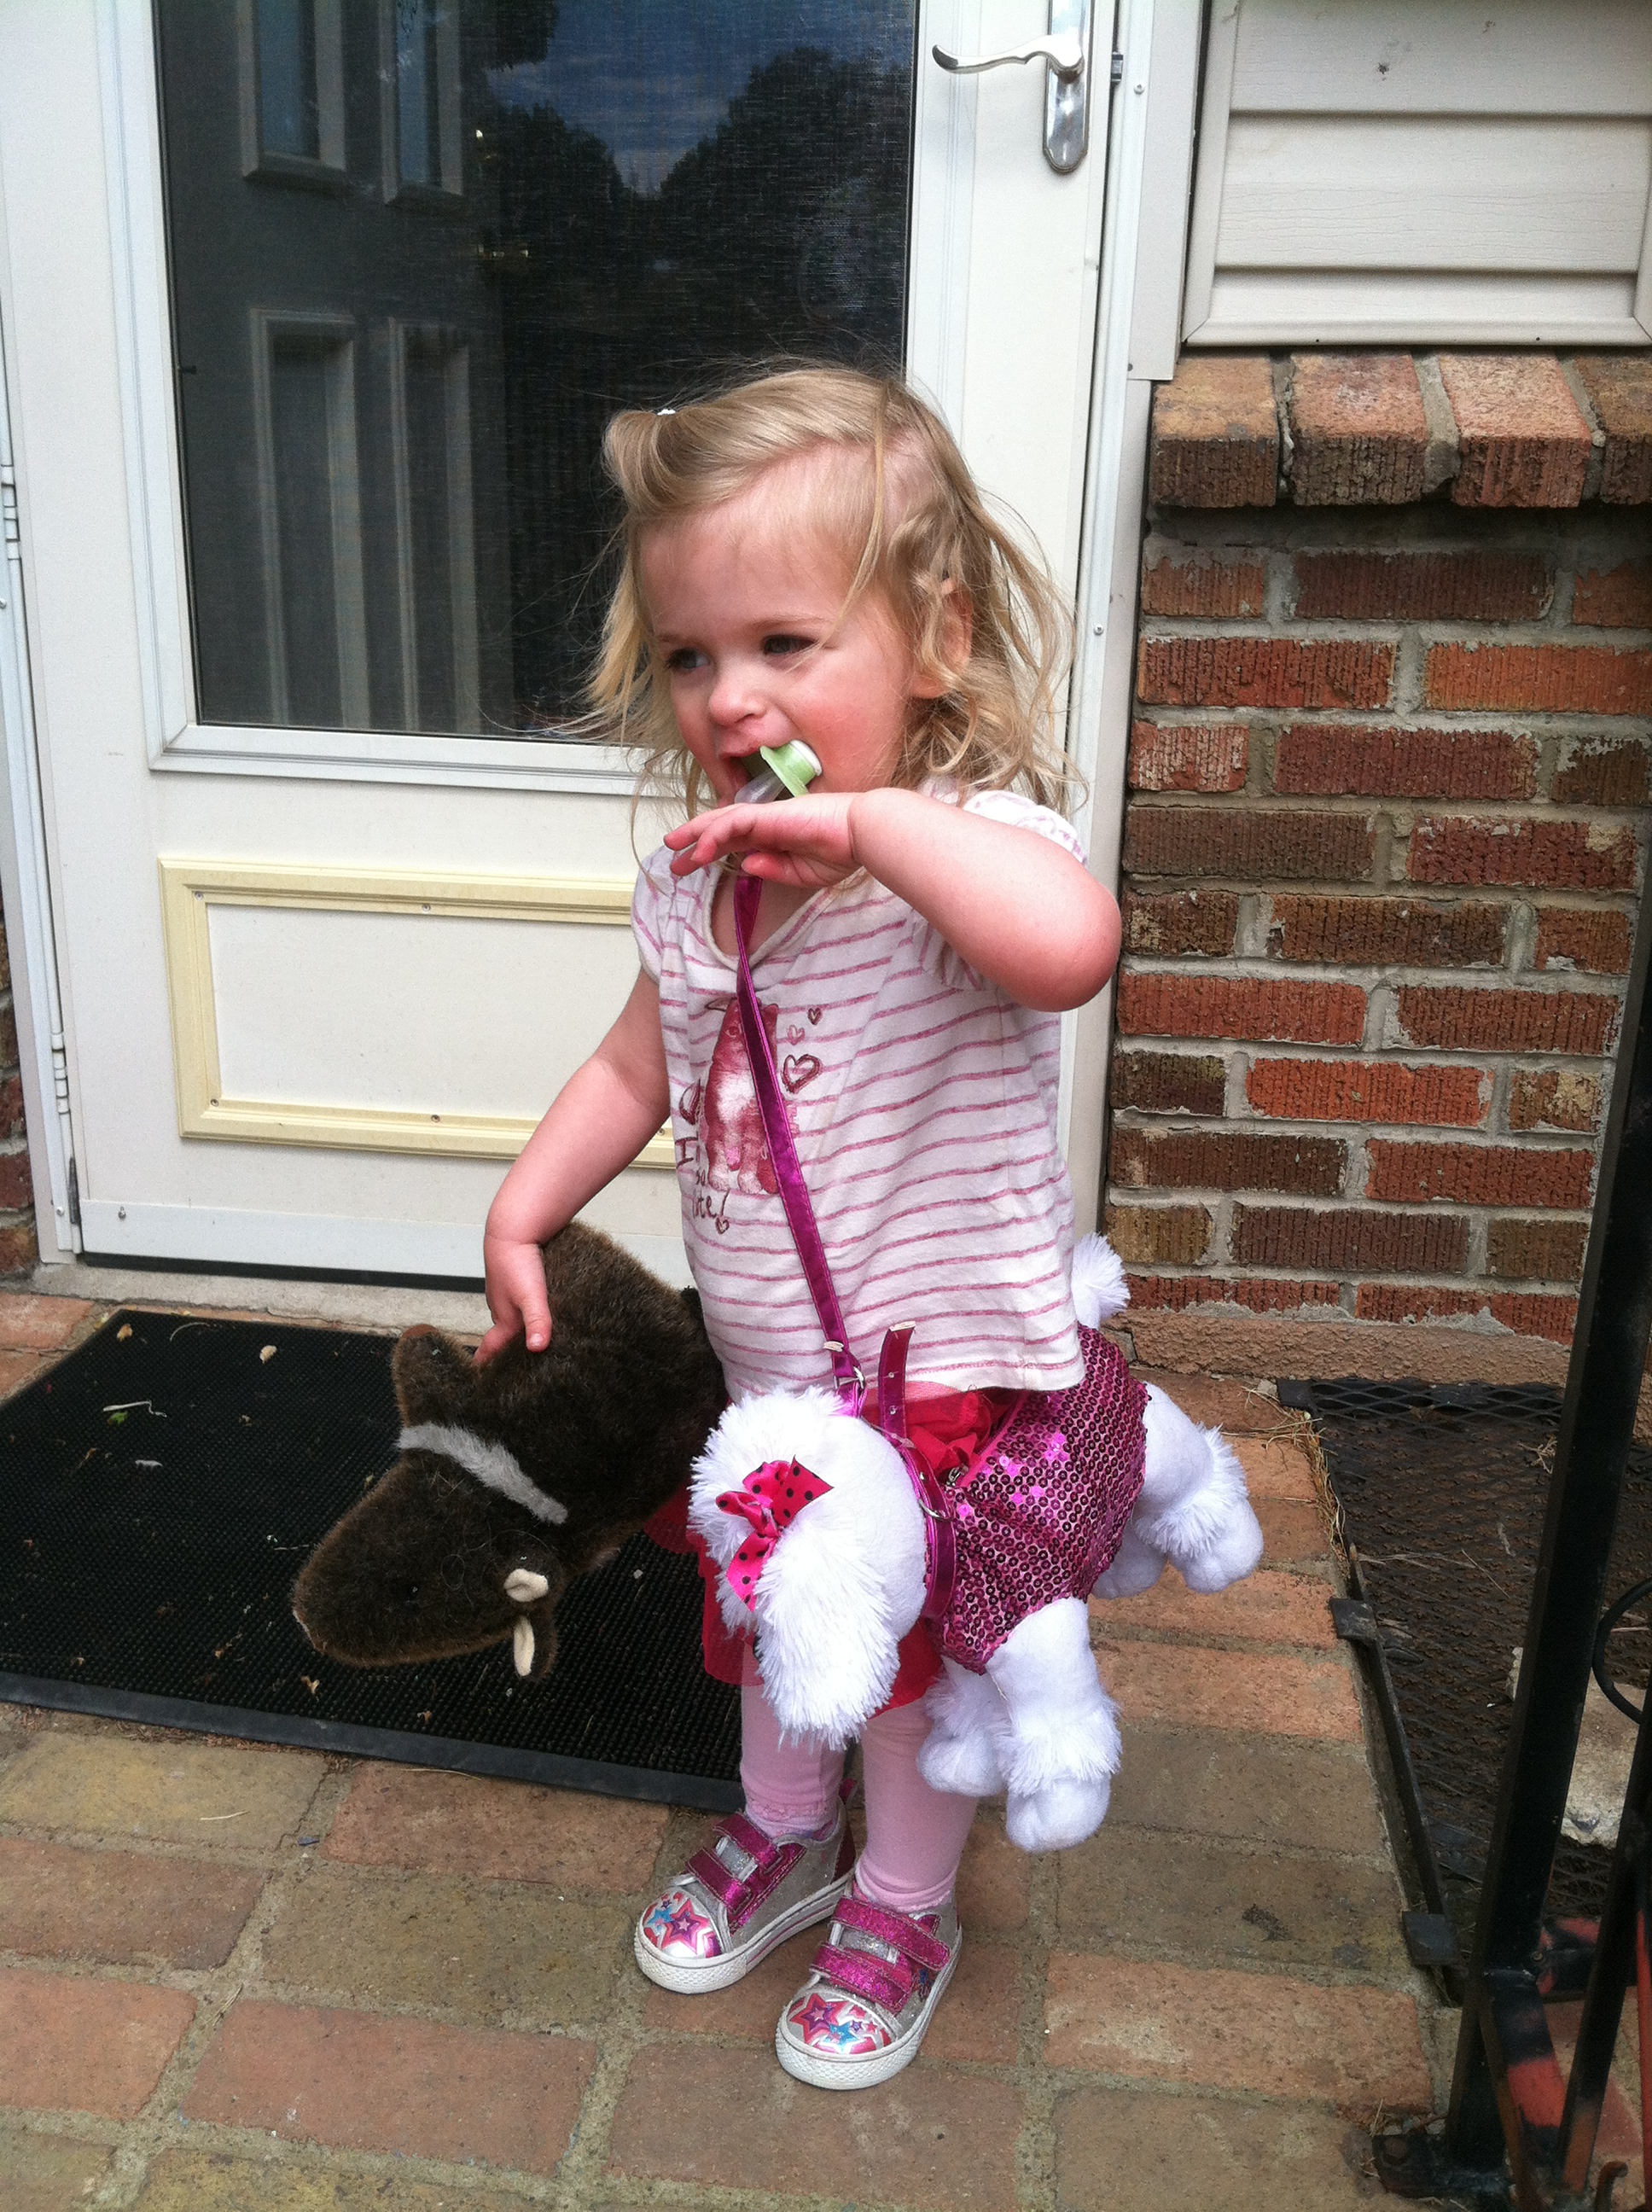 """Let's do this shopping thing."" Tiny-Small with her poodle purse AND her stuffed javalina (wild pig). That is one classy little girl!"